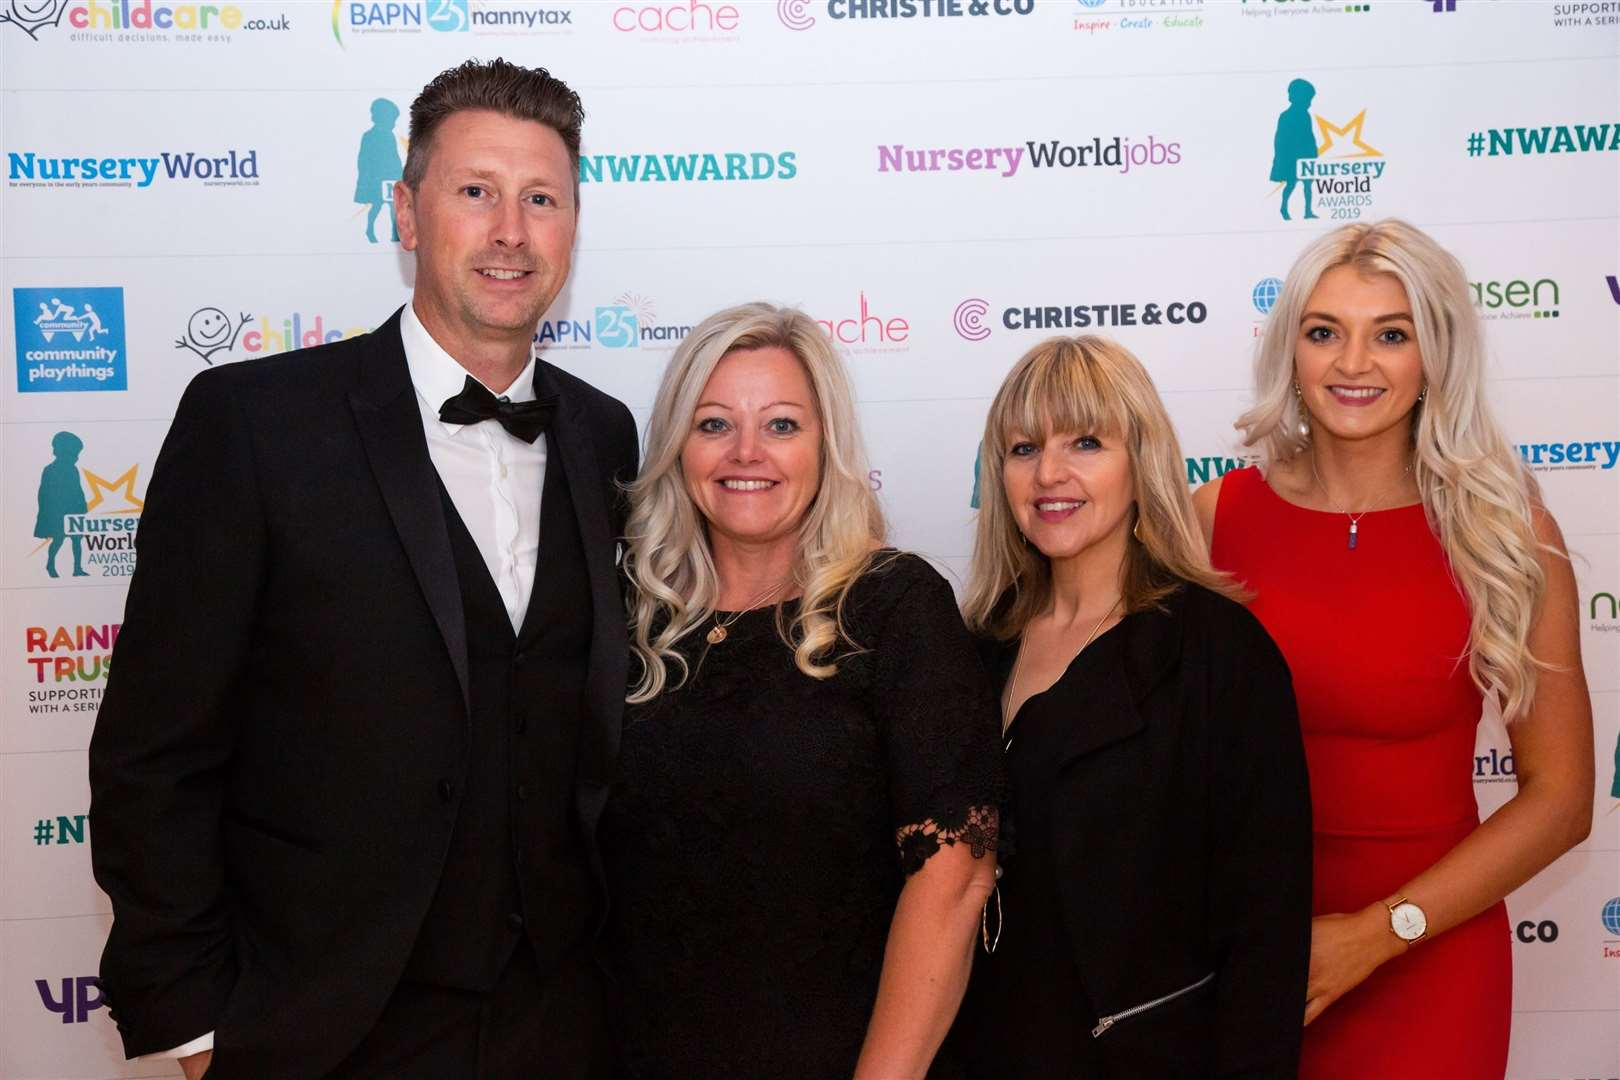 Tony Dixon, Julie Dixon, Jo Wells and Abi Dixon at the awards ceremony. Contributed picture